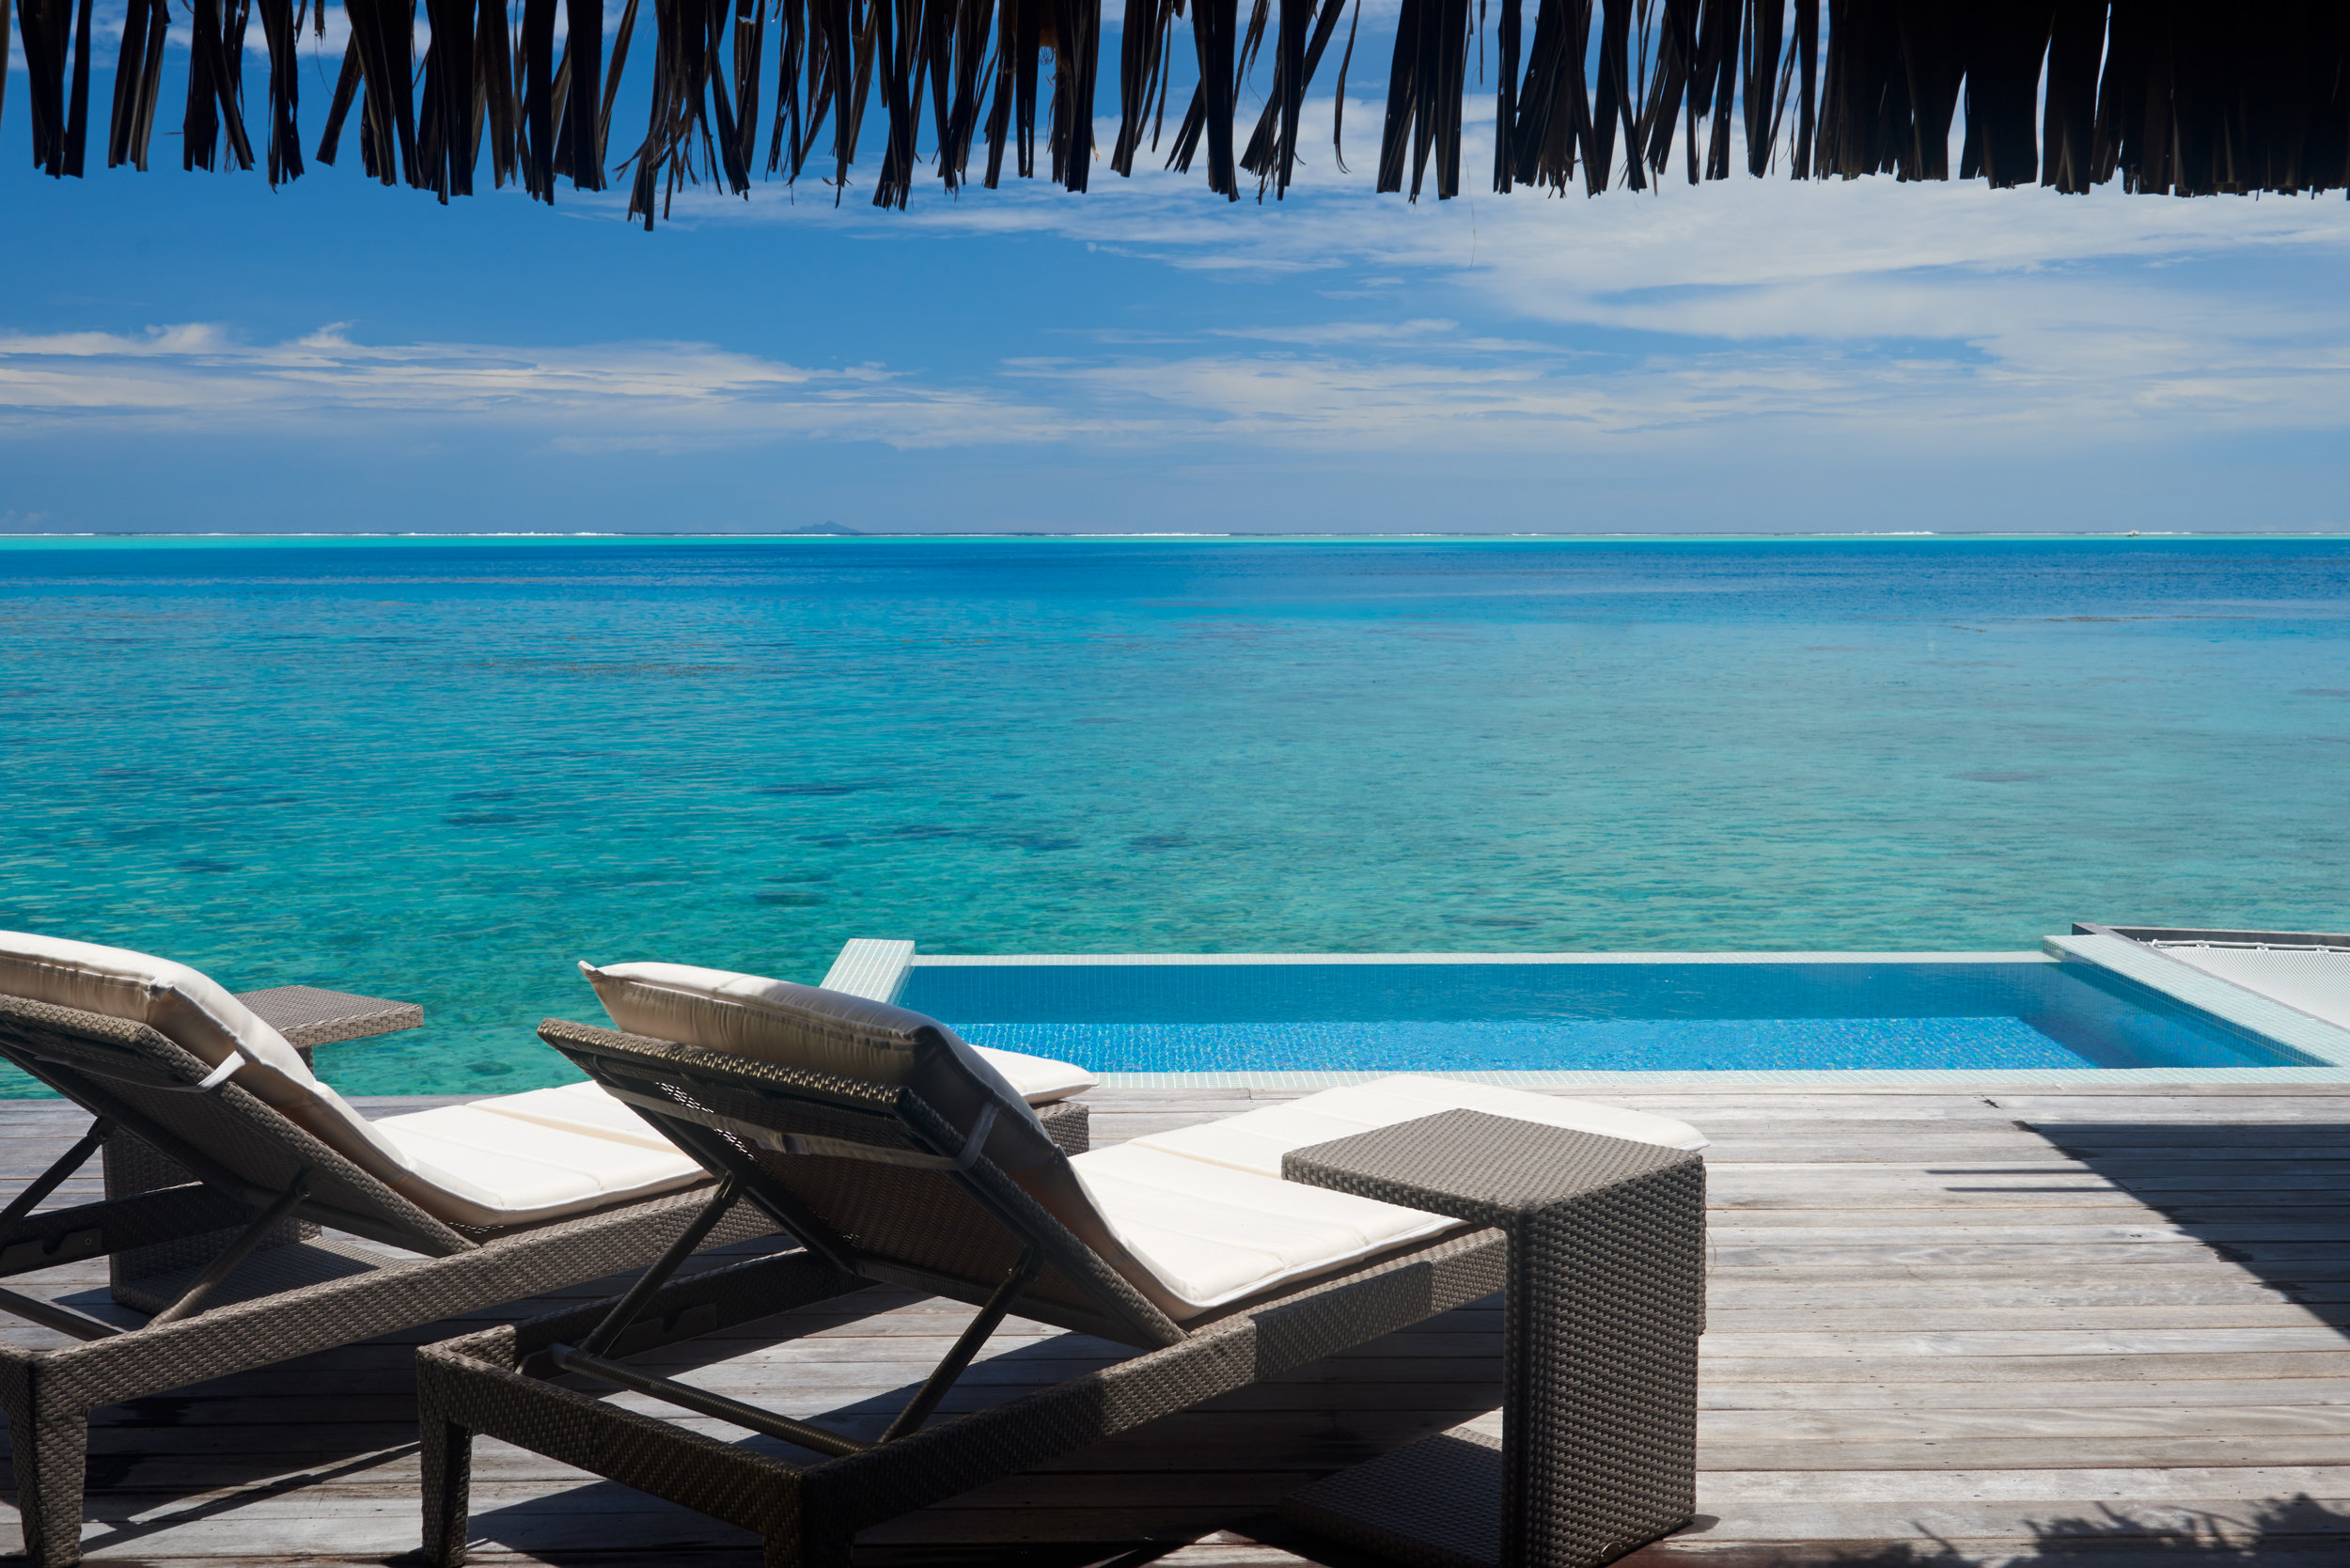 This could be the view from your overwater bungalow in Bora Bora…